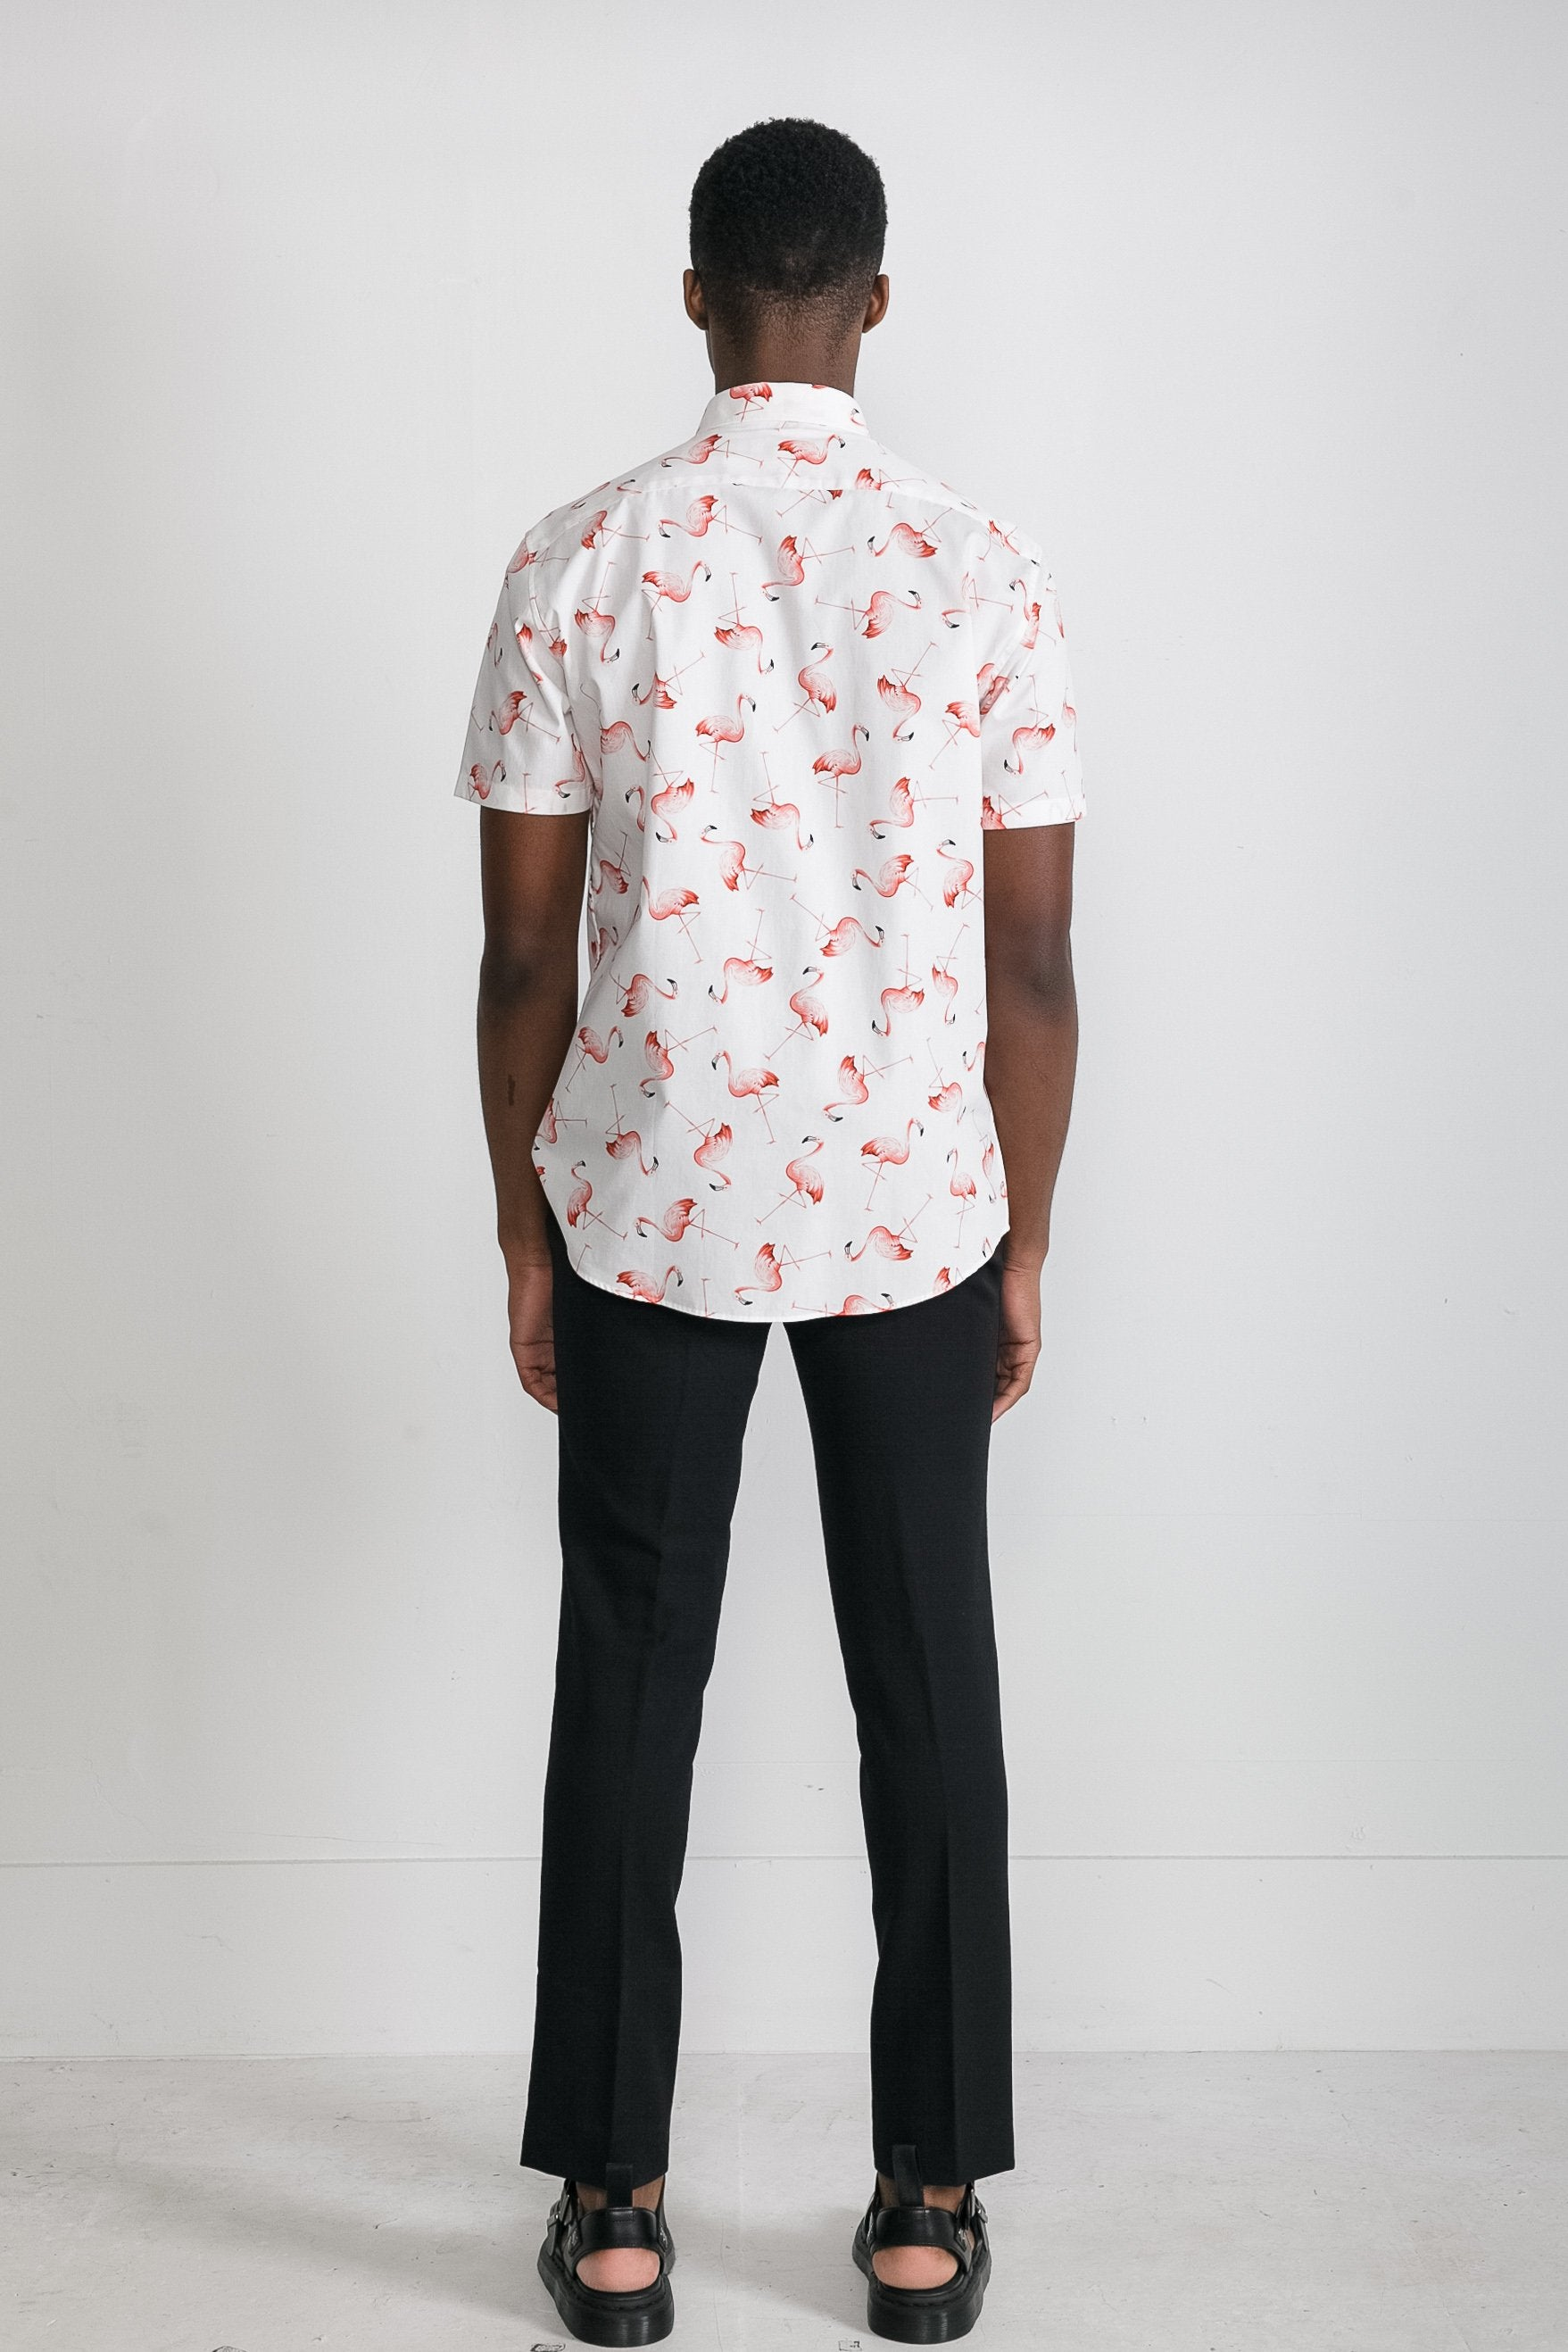 Japanese Flamingo Print in White 003